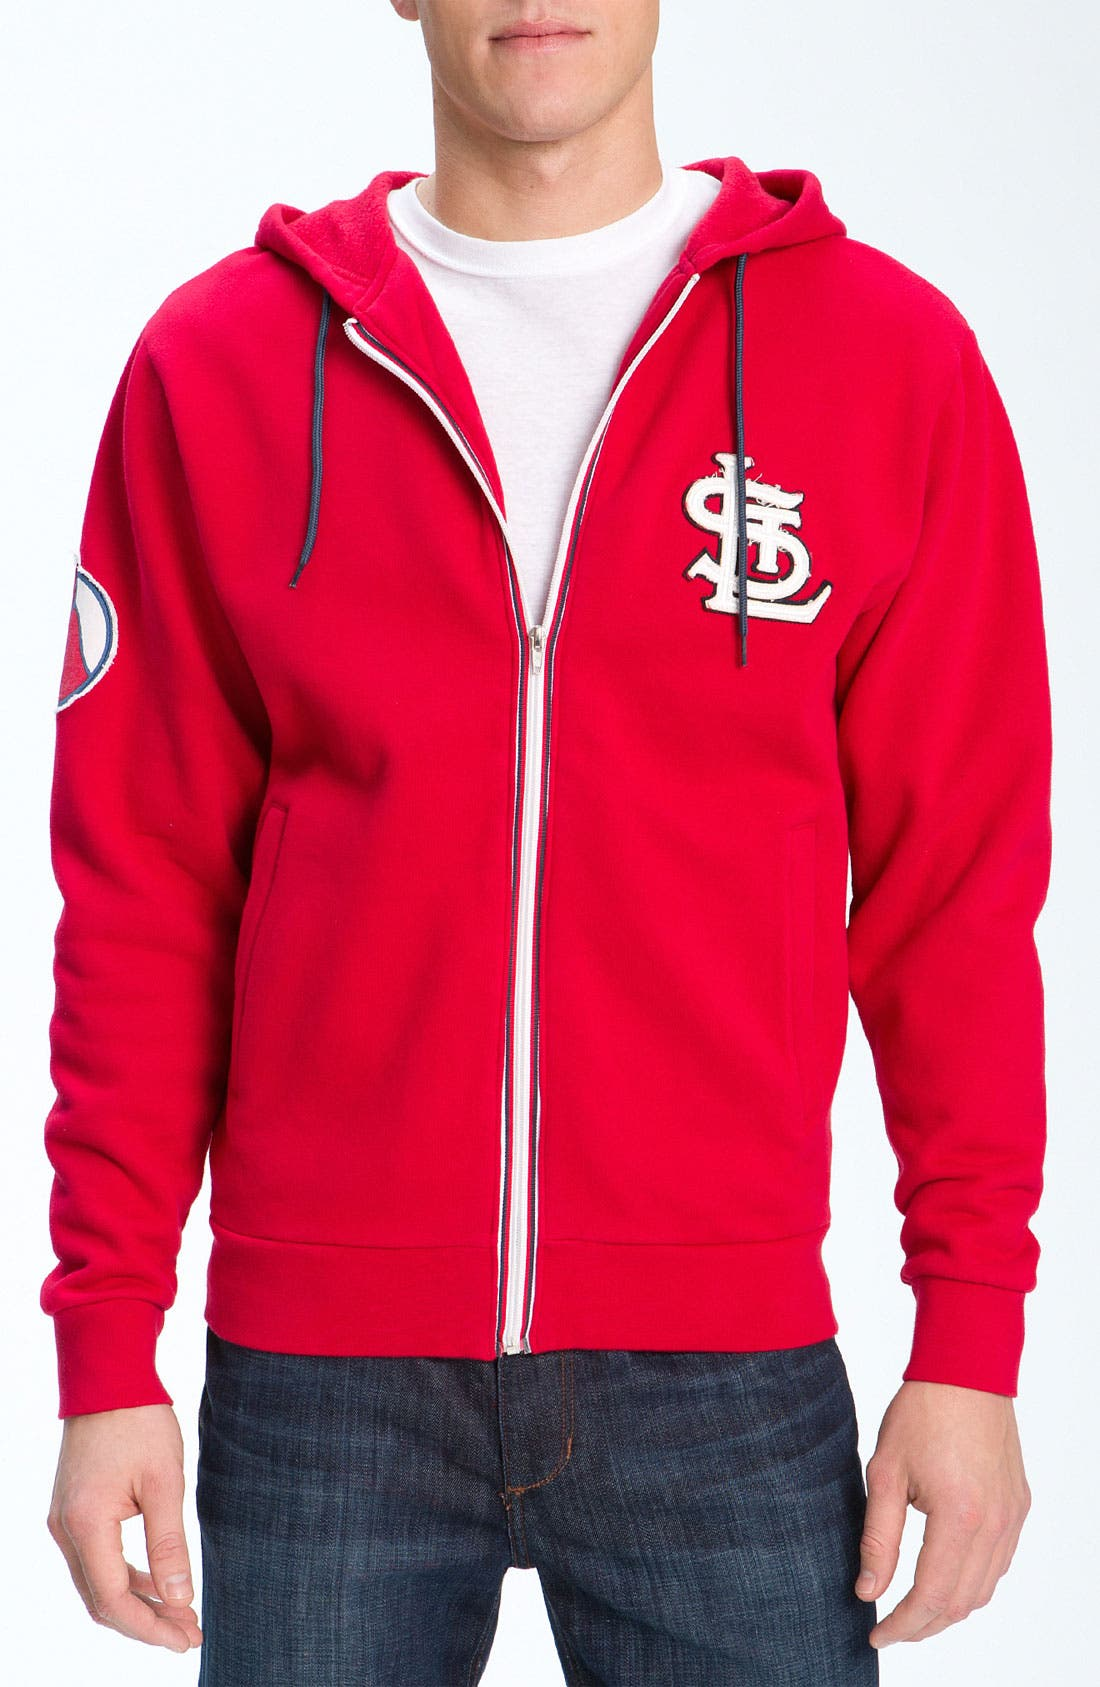 Main Image - Wright & Ditson 'St. Louis Cardinals' Hoodie